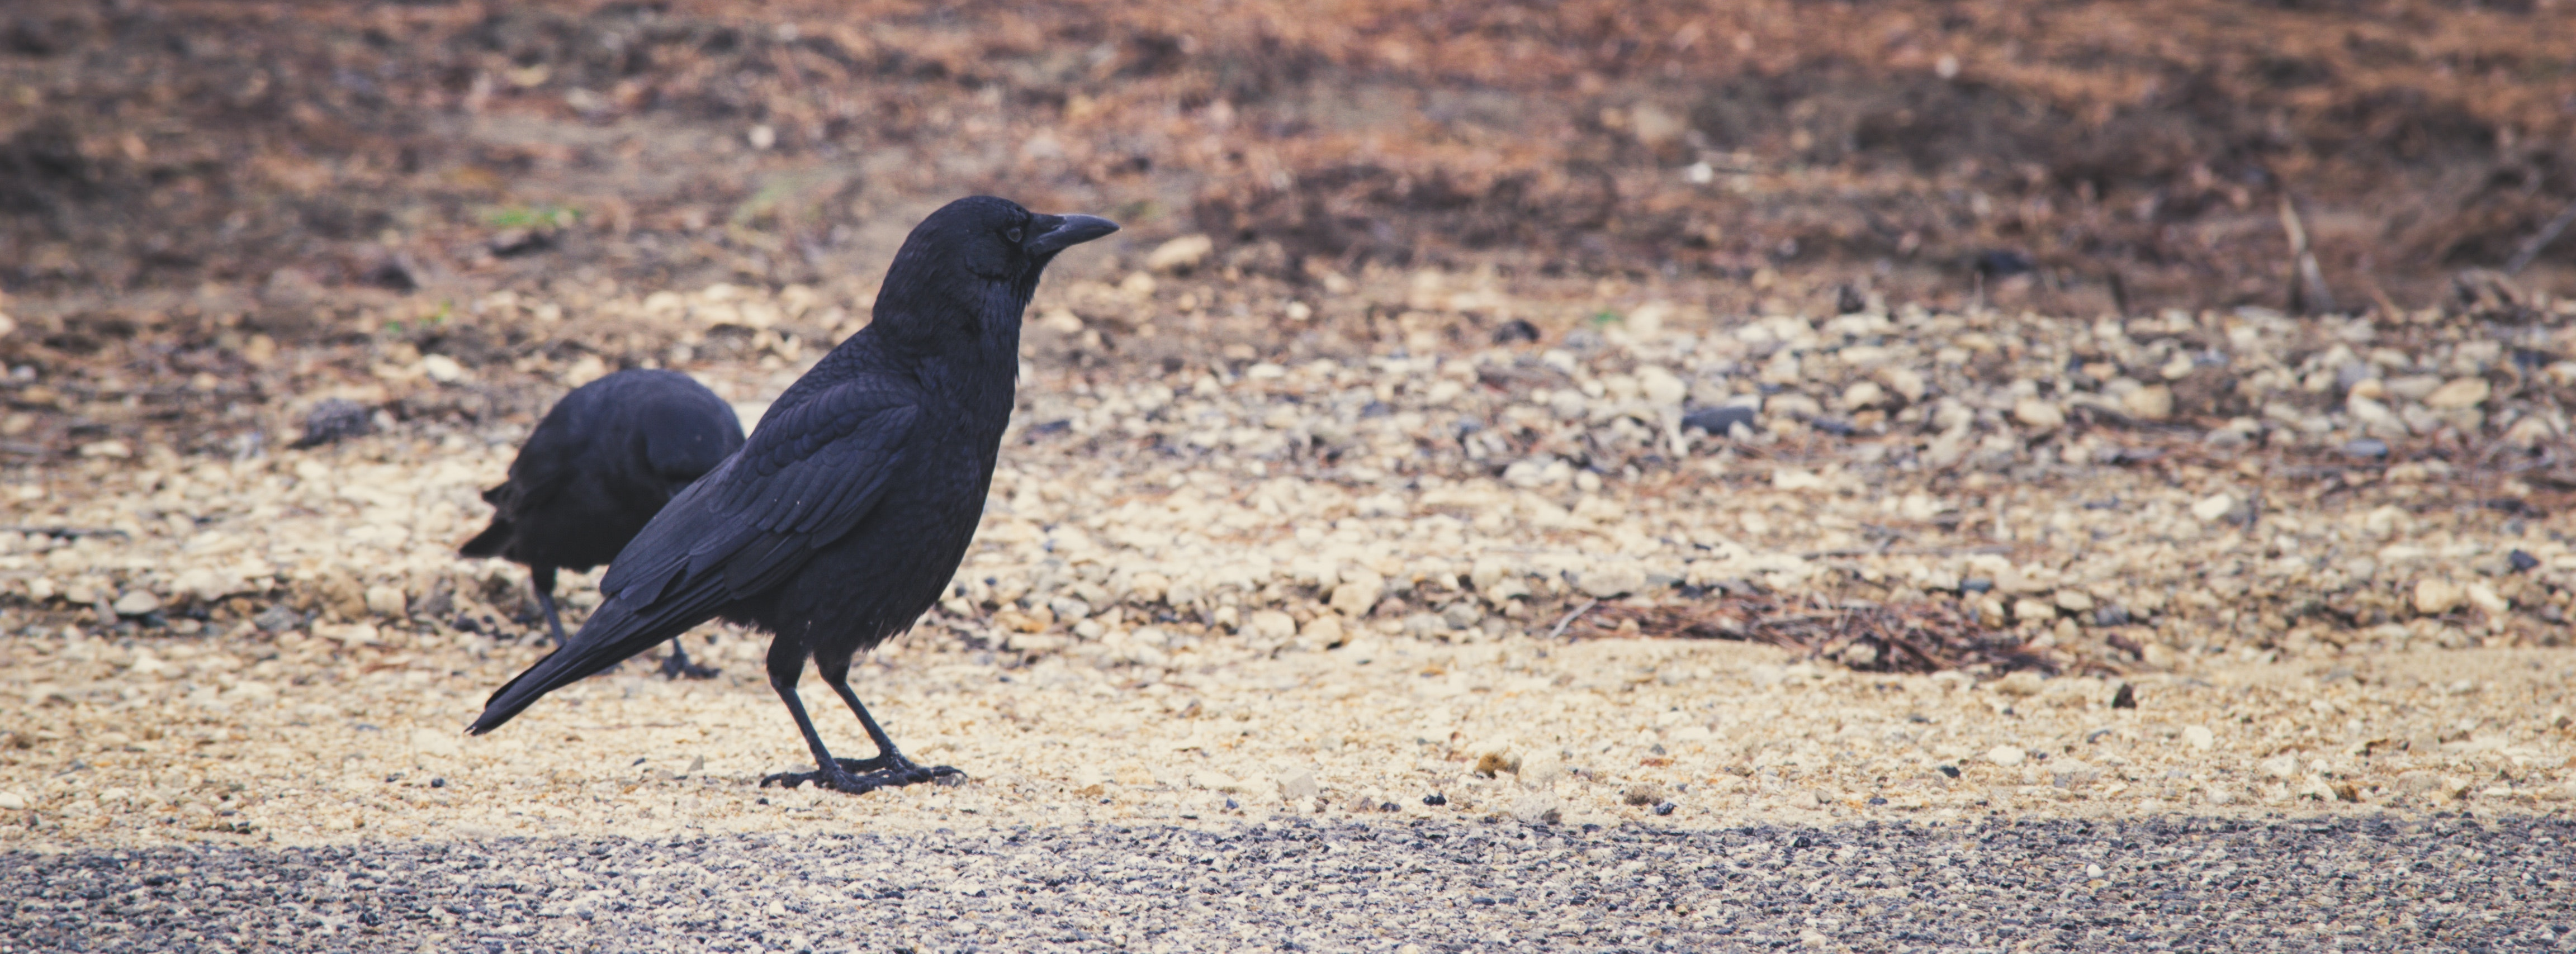 Black raven stands on the road photo